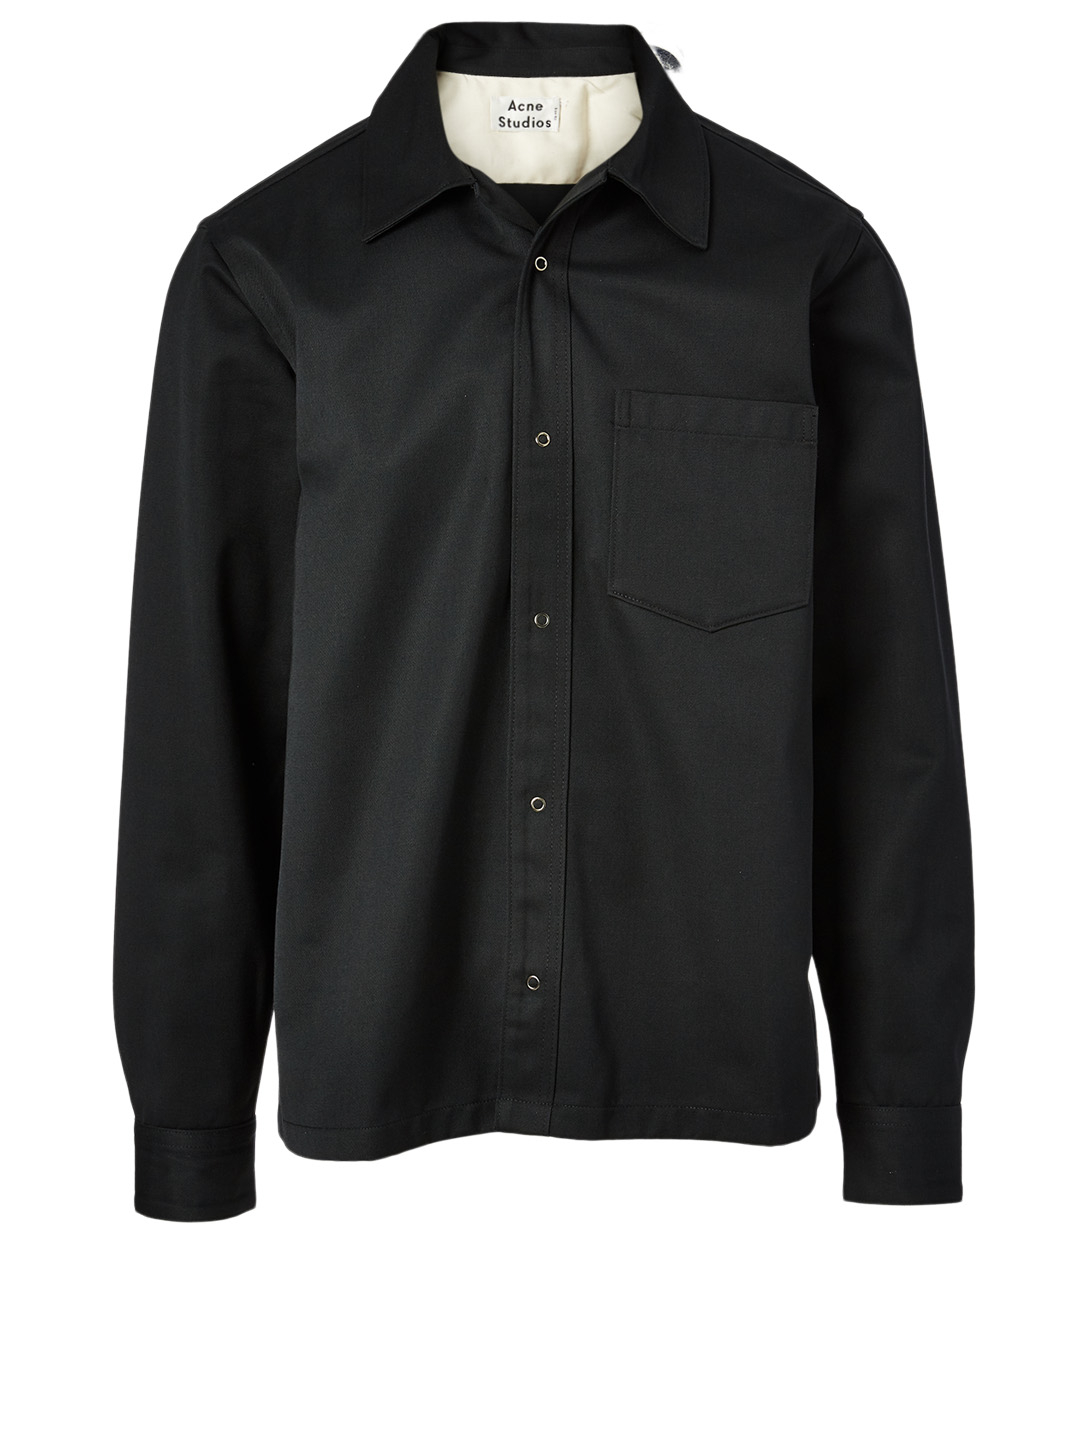 ACNE STUDIOS Cotton Twill Shirt Men's Black